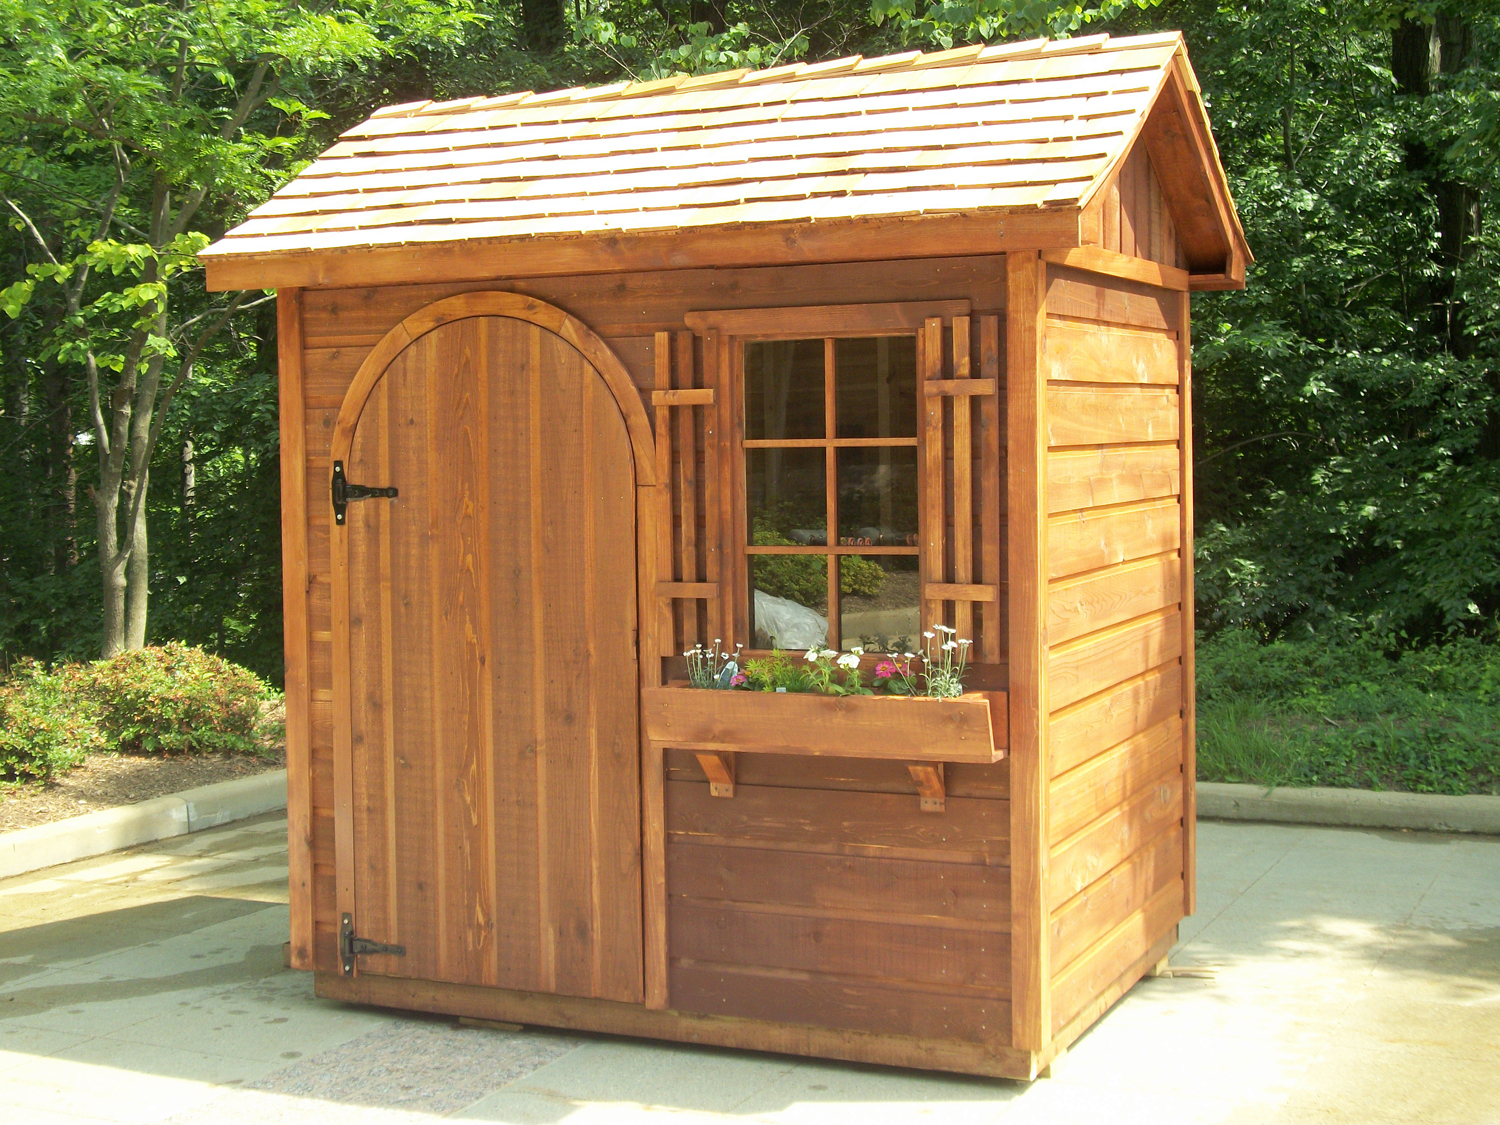 Garden shed design and plans shed blueprints Design shed